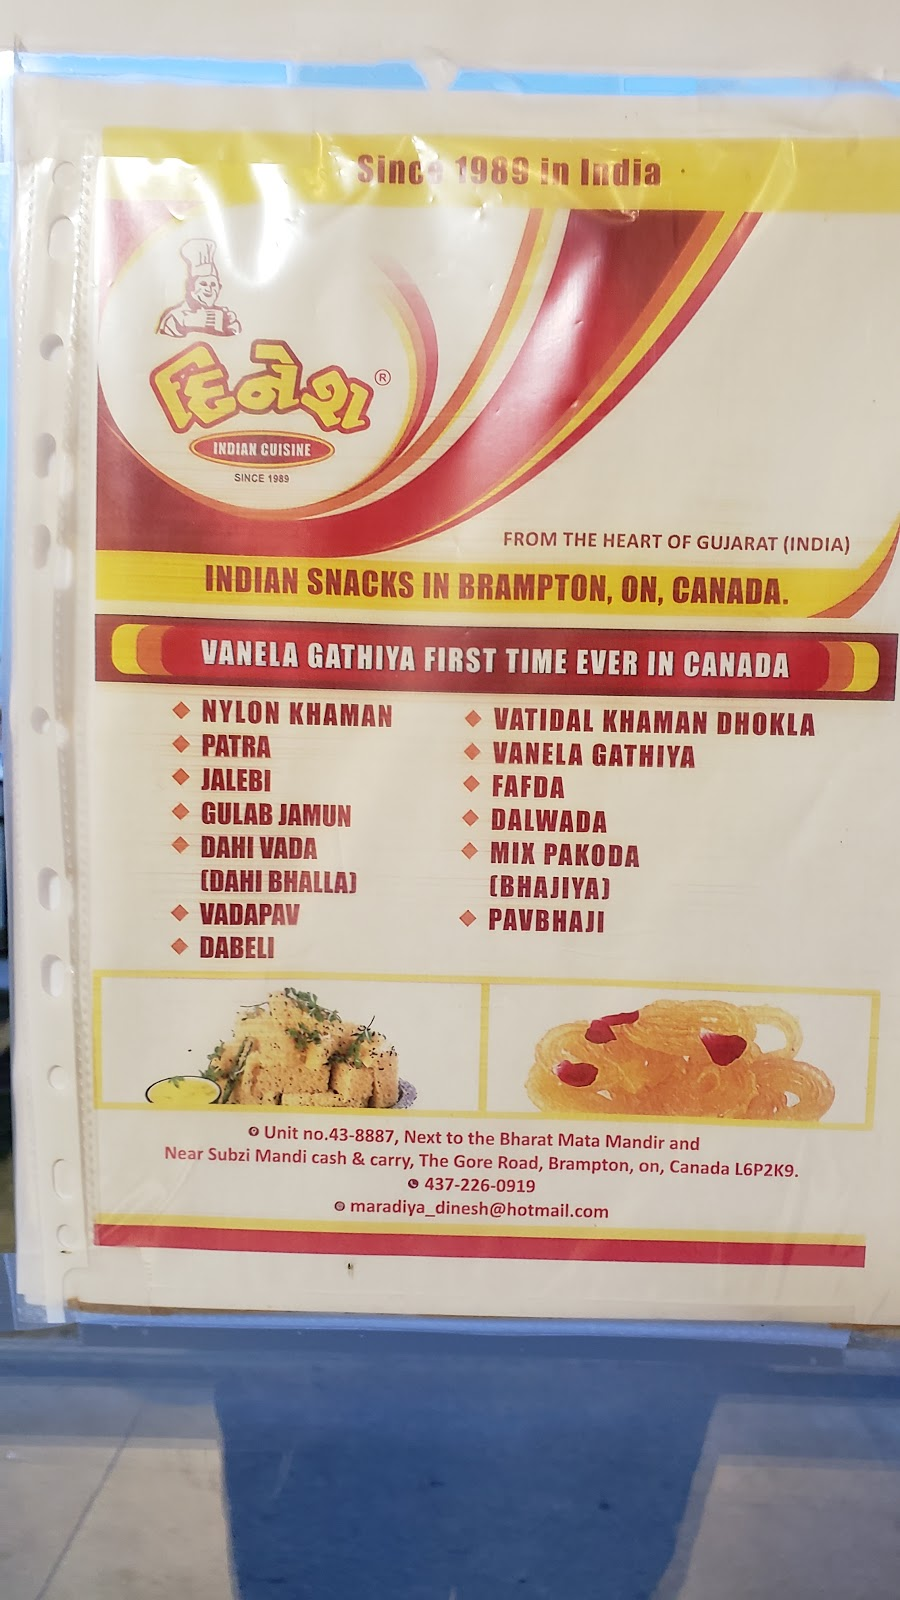 Dinesh Indian Cuisine | restaurant | 43-8887 The Gore Rd, Brampton, ON L6P 0B7, Canada | 4372260919 OR +1 437-226-0919